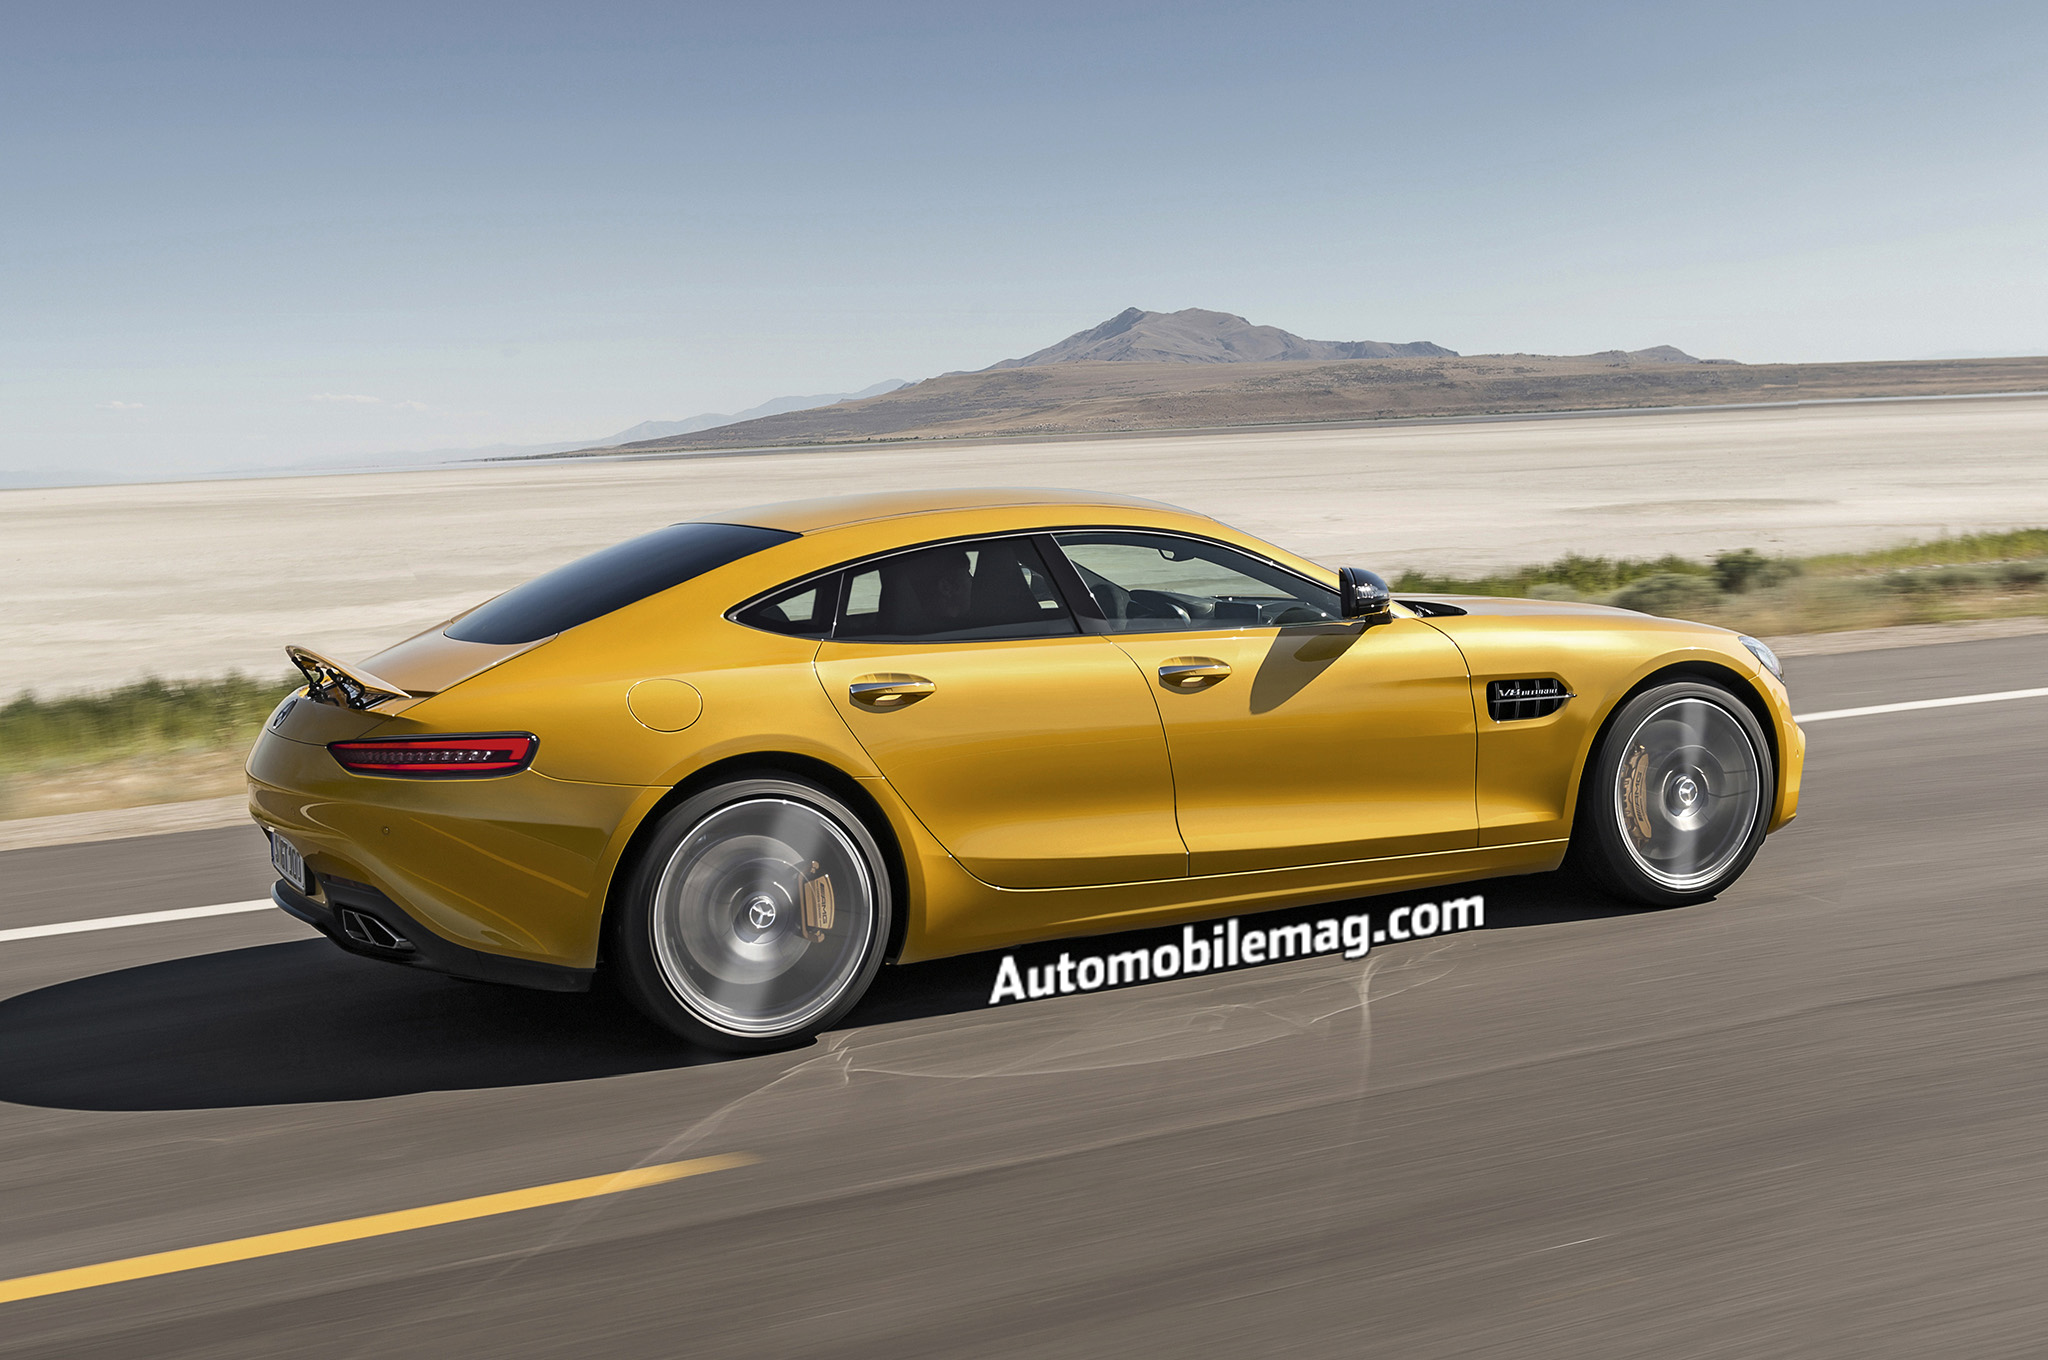 deep dive: mercedes-amg gt4 comes to market in 2018